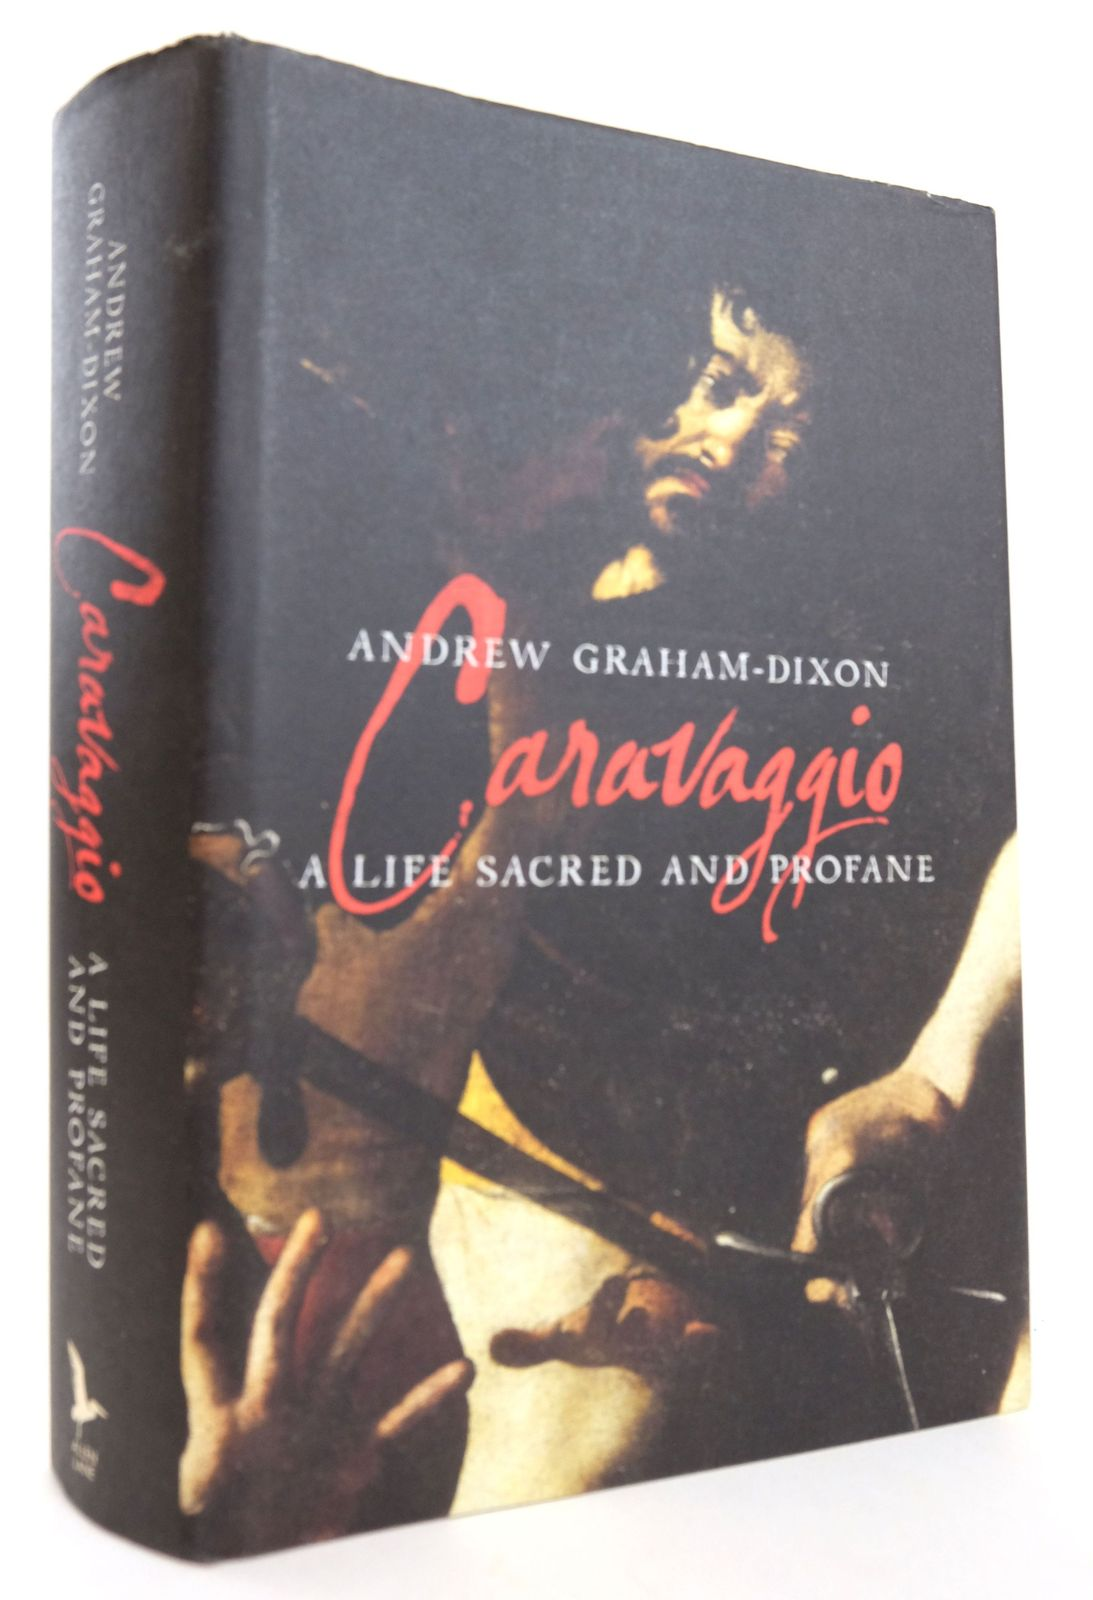 Photo of CARAVAGGIO A LIFE SACRED AND PROFANE written by Graham-Dixon, Andrew illustrated by Caravaggio, published by Allen Lane (STOCK CODE: 1819118)  for sale by Stella & Rose's Books